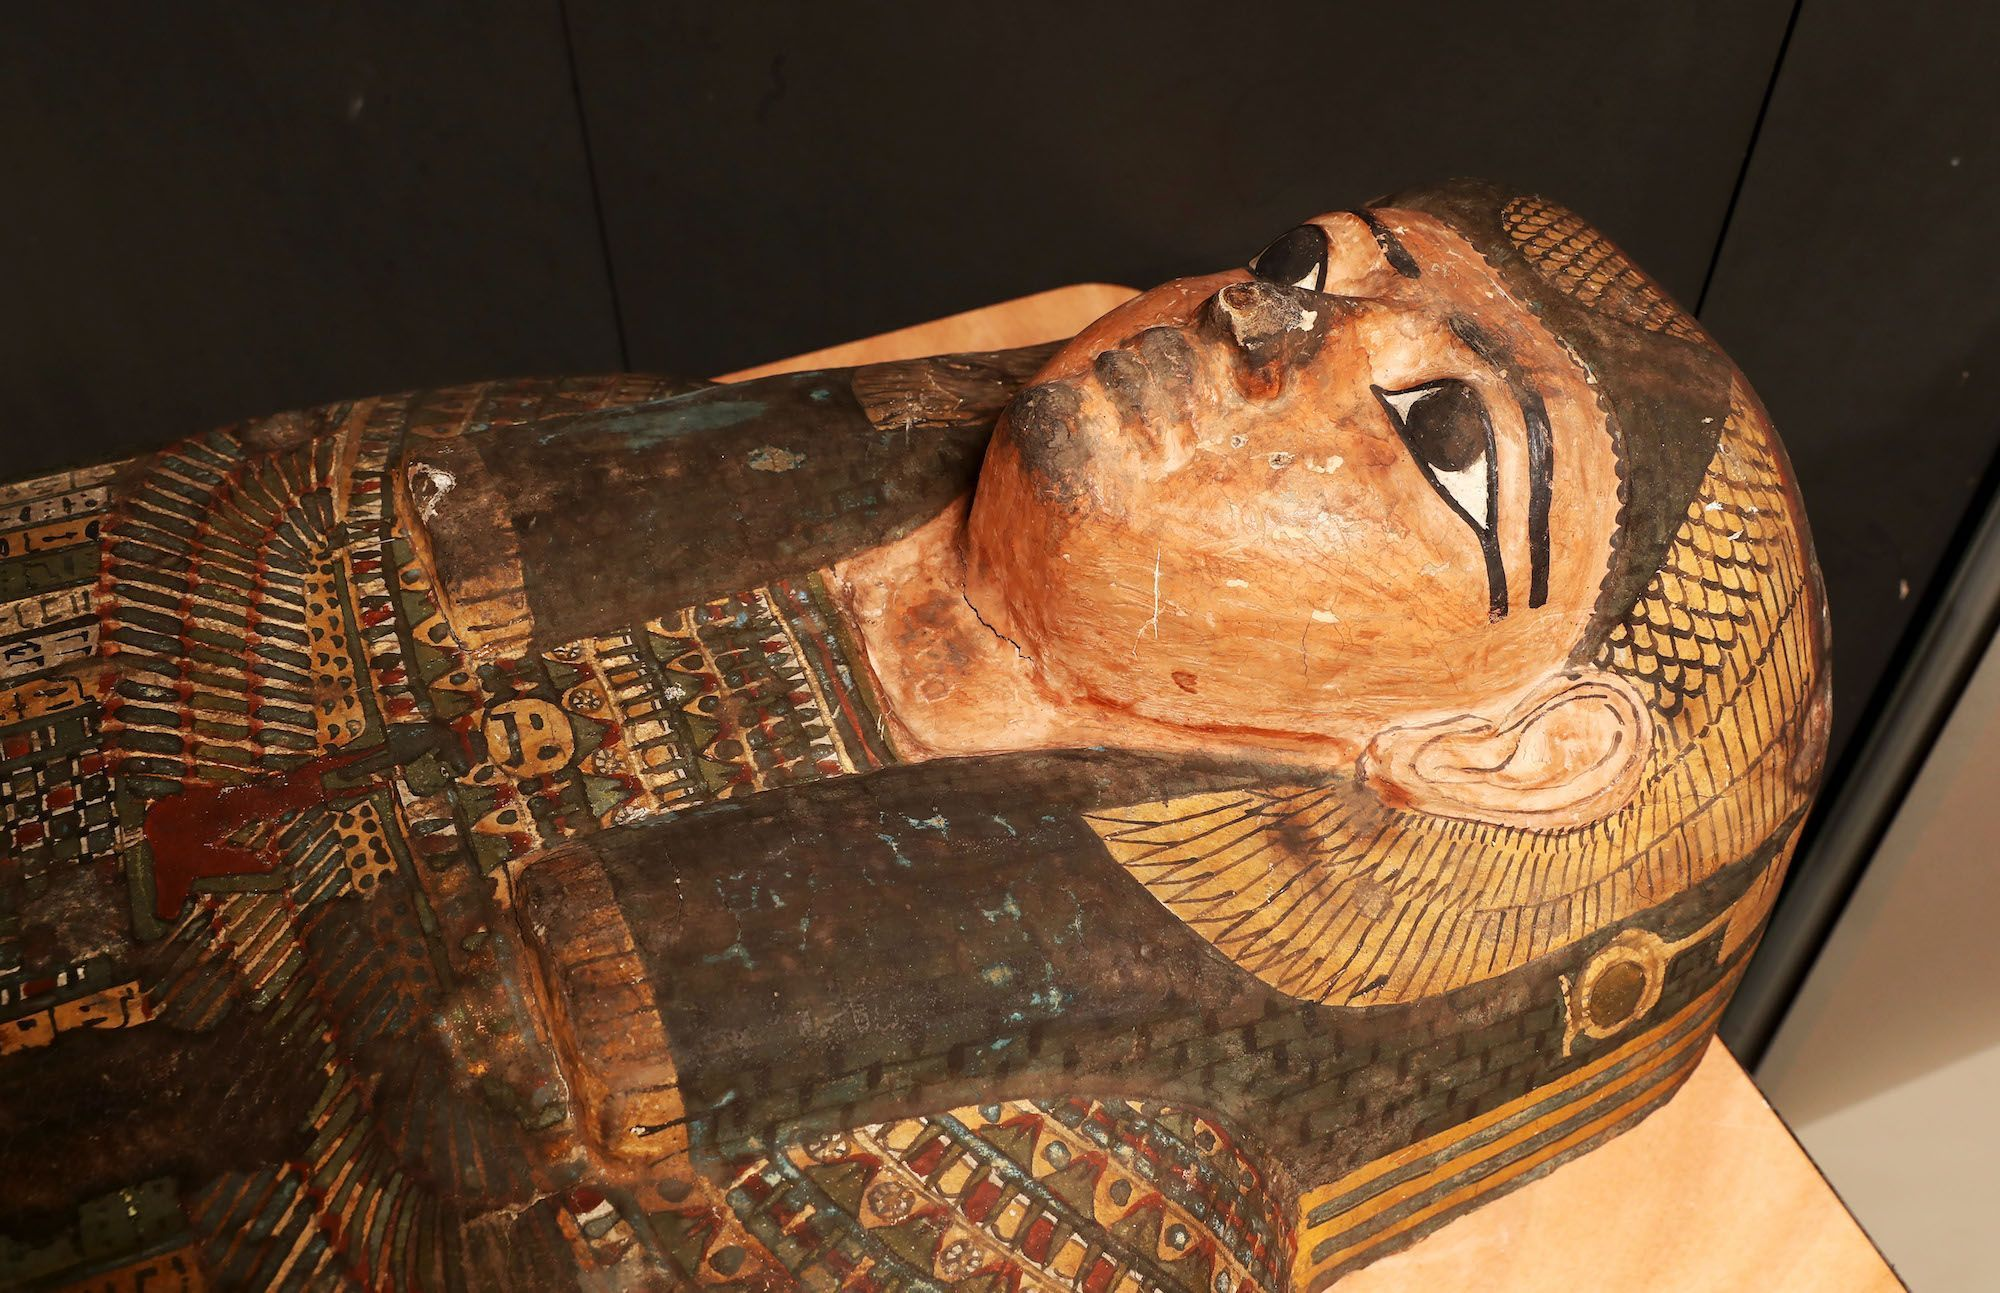 Egyptian mummy that's 2,600 years old believed to have been stabbed in back, study claims